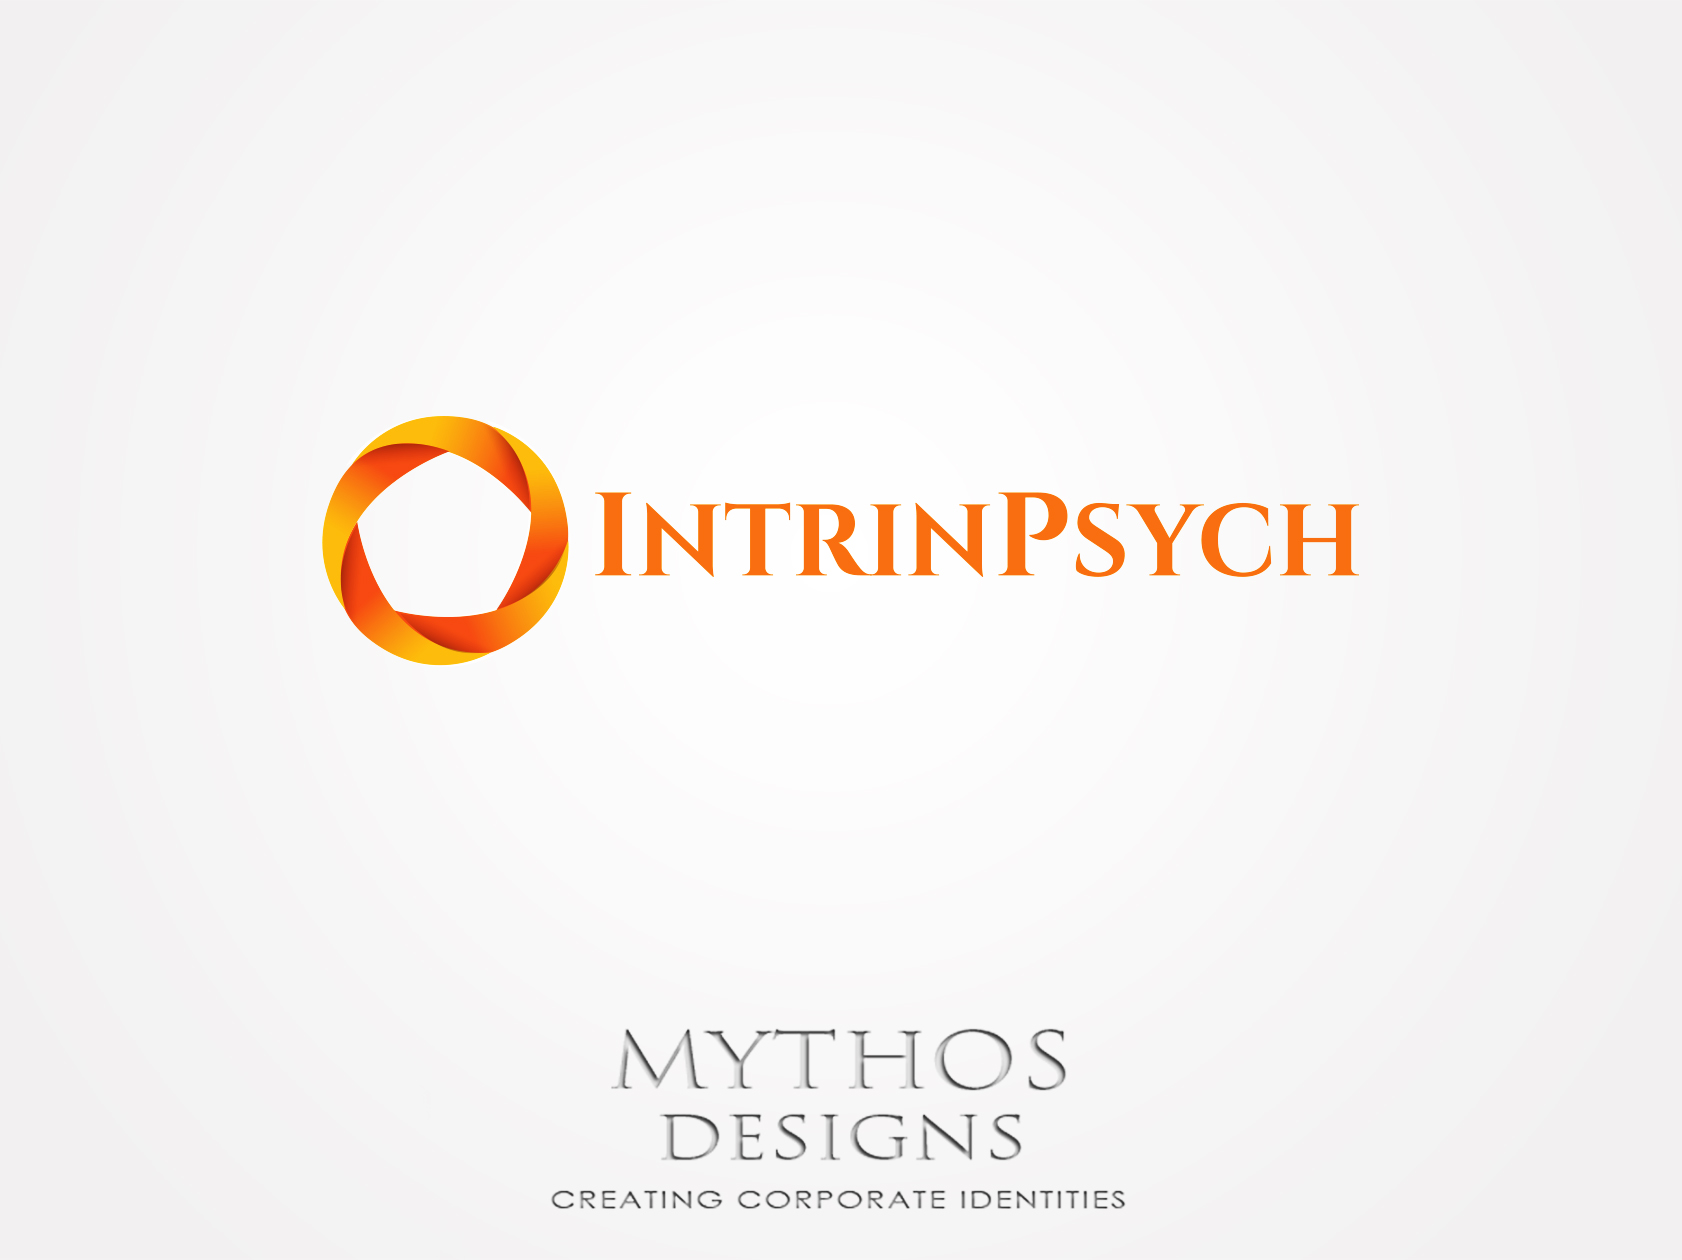 Logo Design by Mythos Designs - Entry No. 109 in the Logo Design Contest New Logo Design for IntrinPsych.